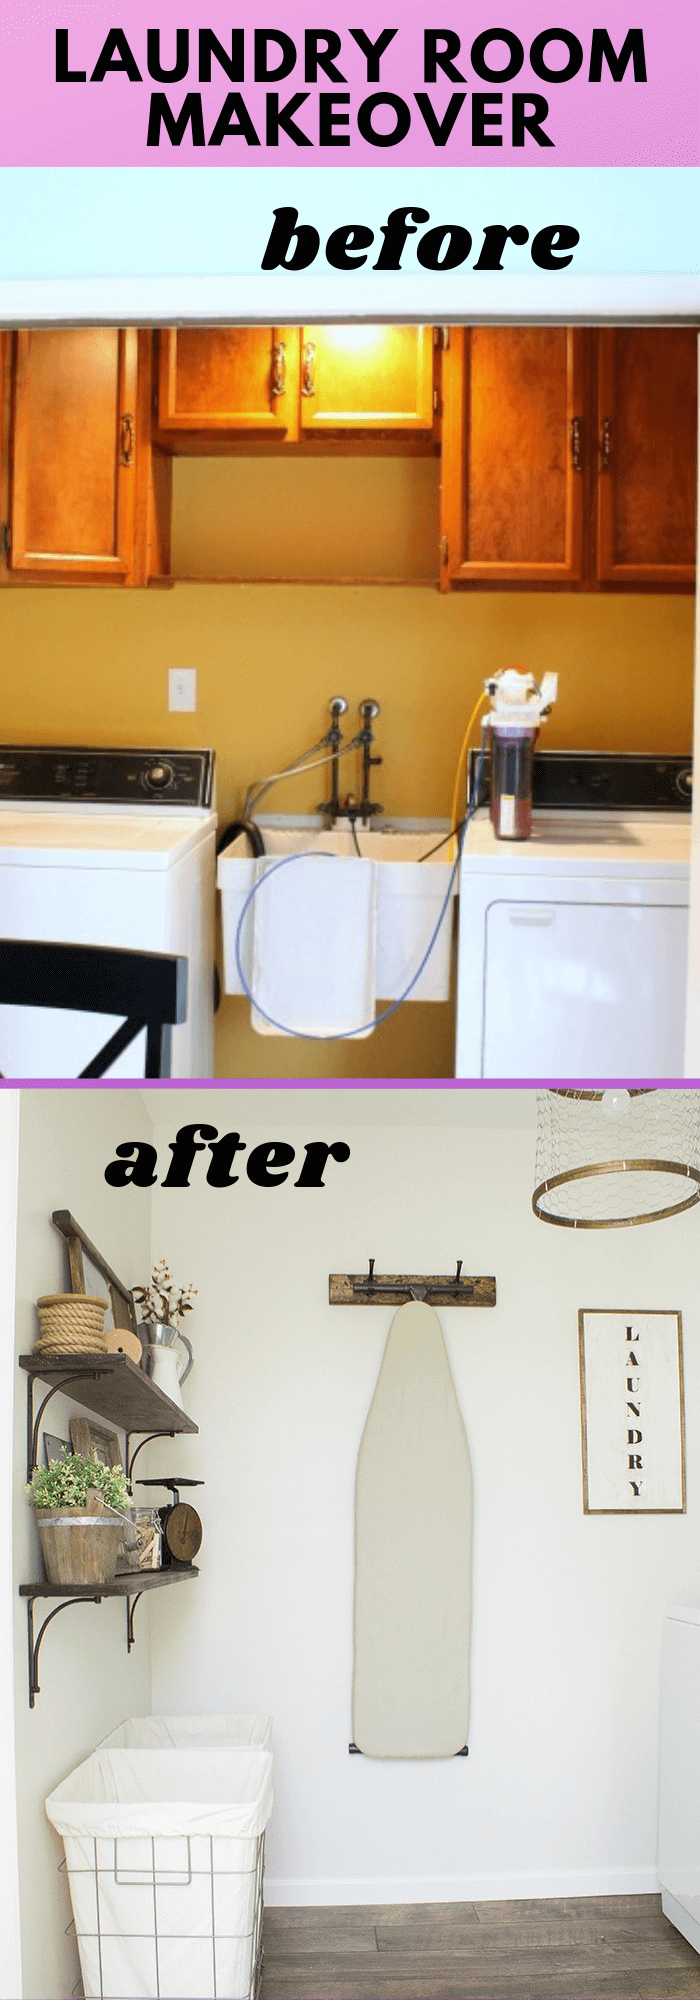 Rustic industrial laundry room: Wood shelf with a lot of fun accessories and hampers for laundry bins